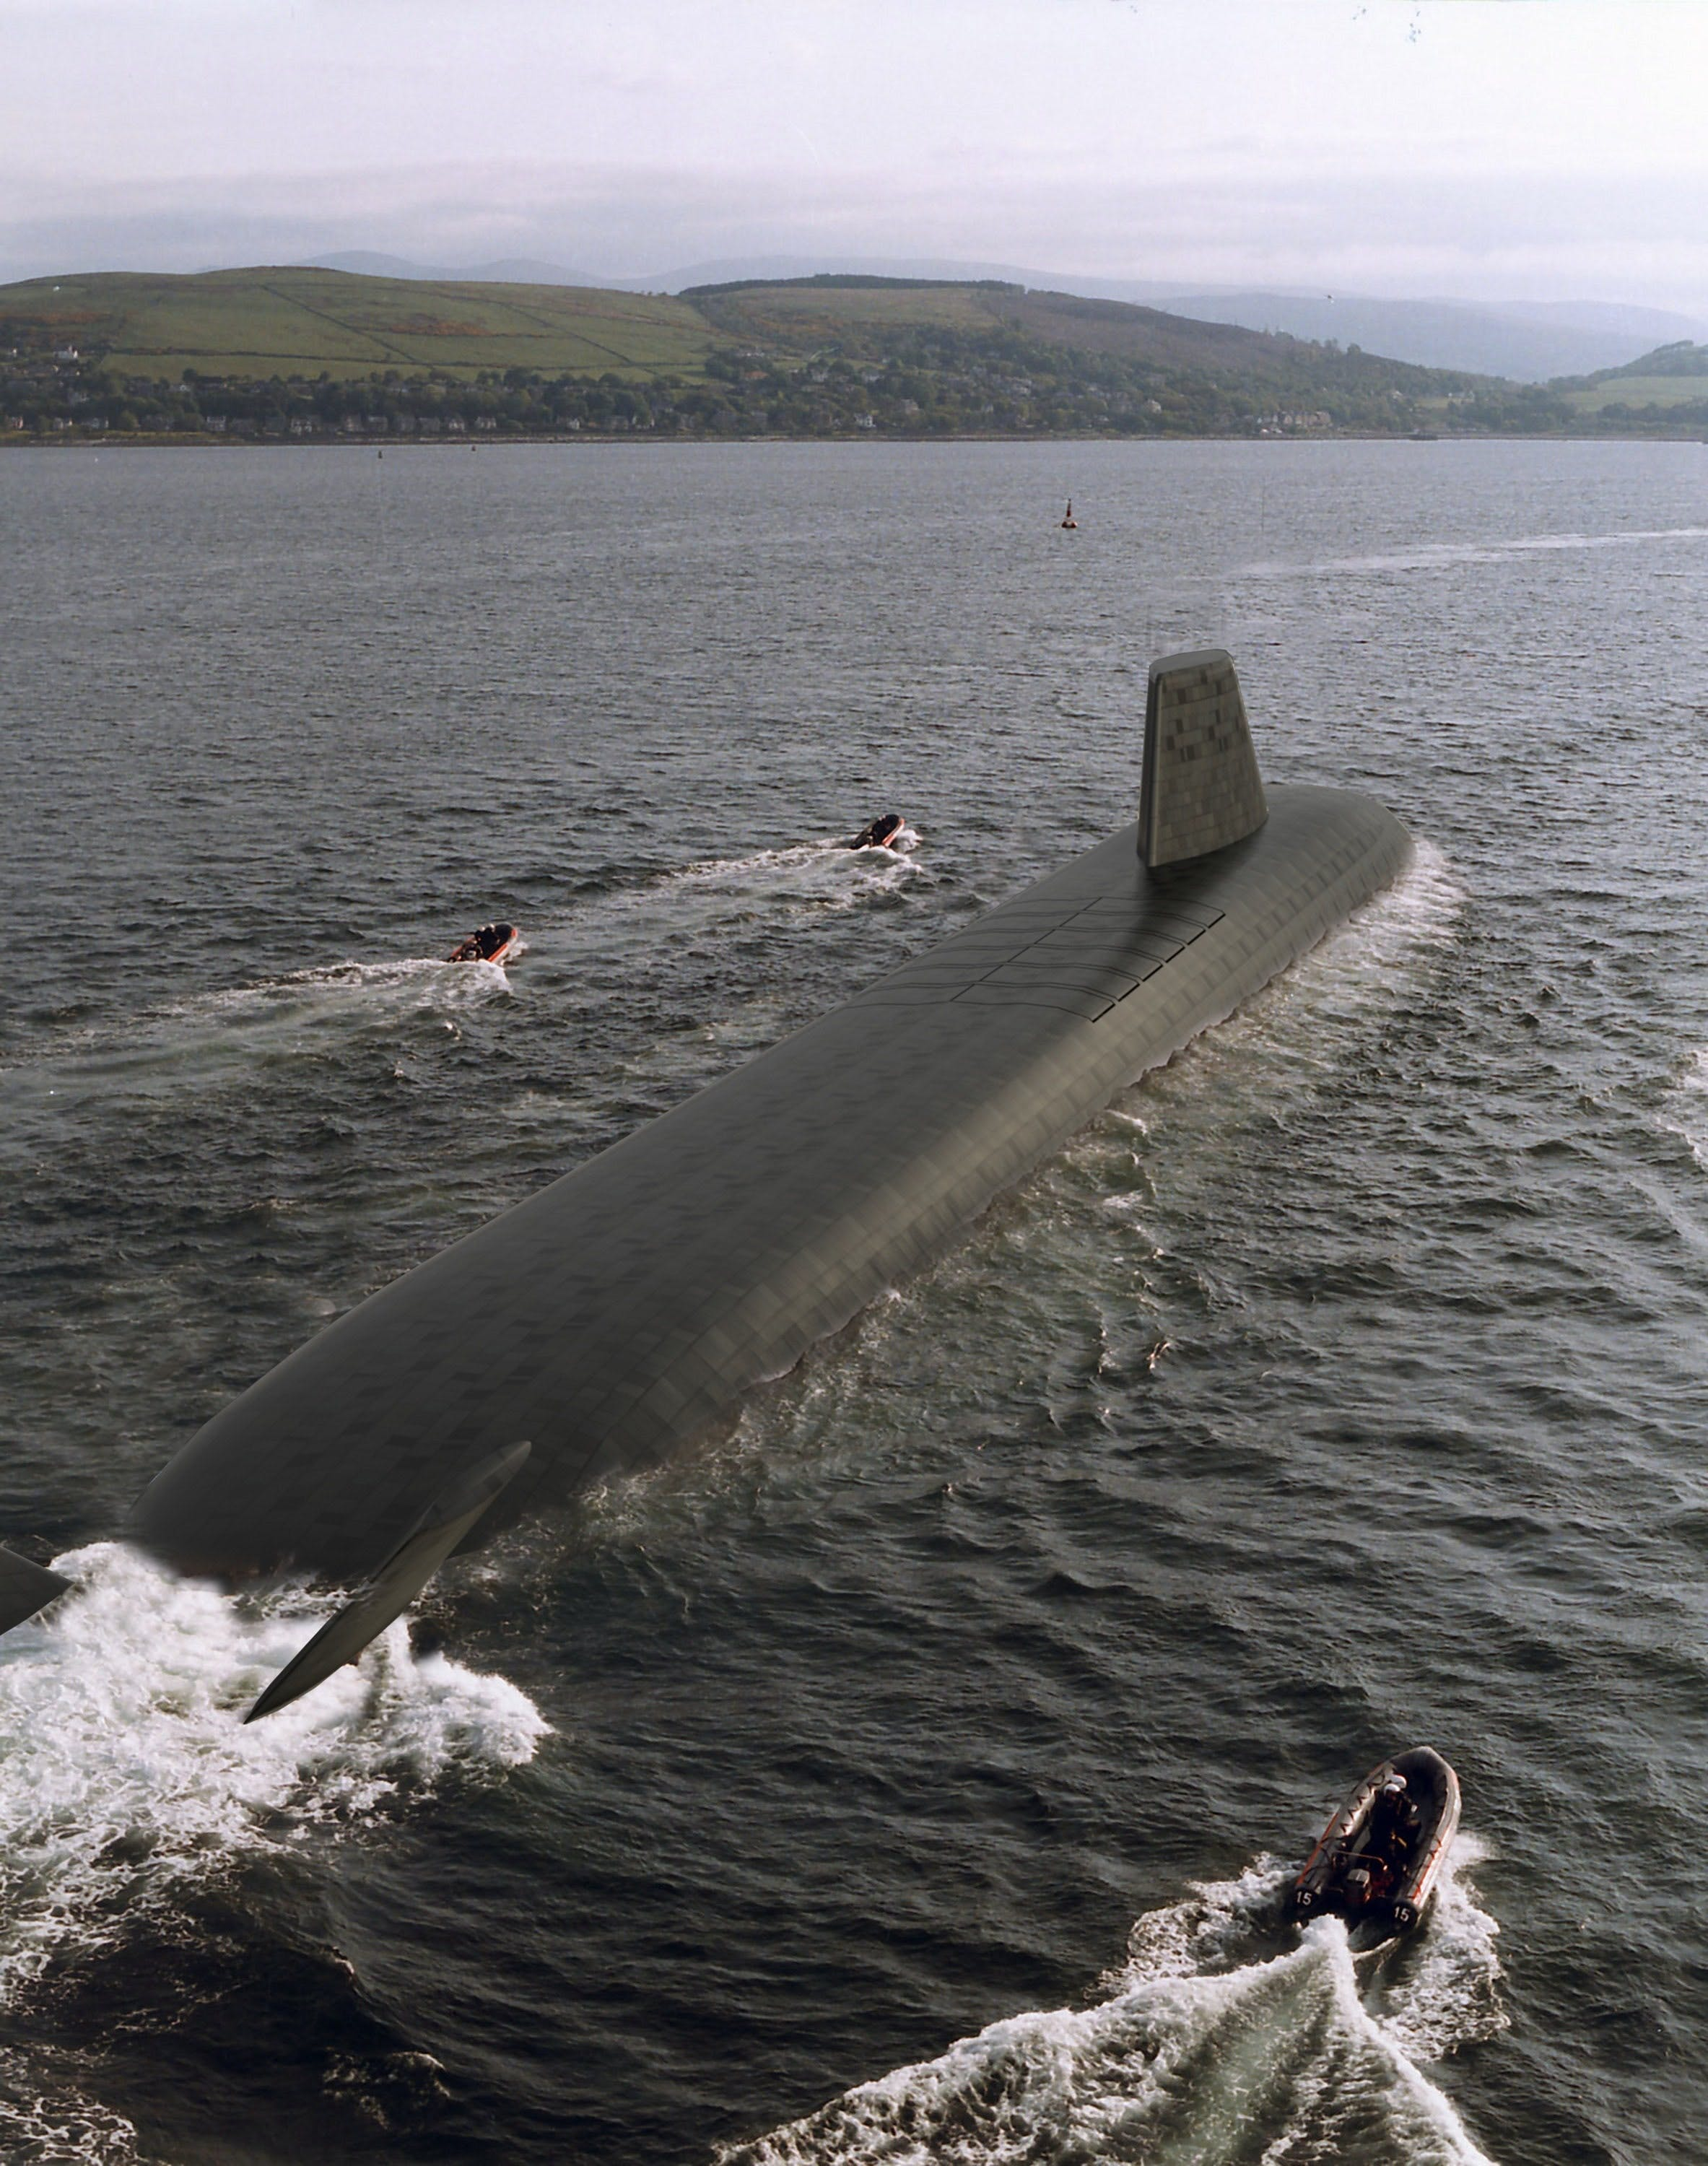 This Trident Submarine is a Nuclear powered vessel contributing to NATO's nuclear deterrent. It is an advanced, high speed, long endurance underwater sub. These displace over 16 thousand tonnes and offer spacious accommodation on three decks. These carry